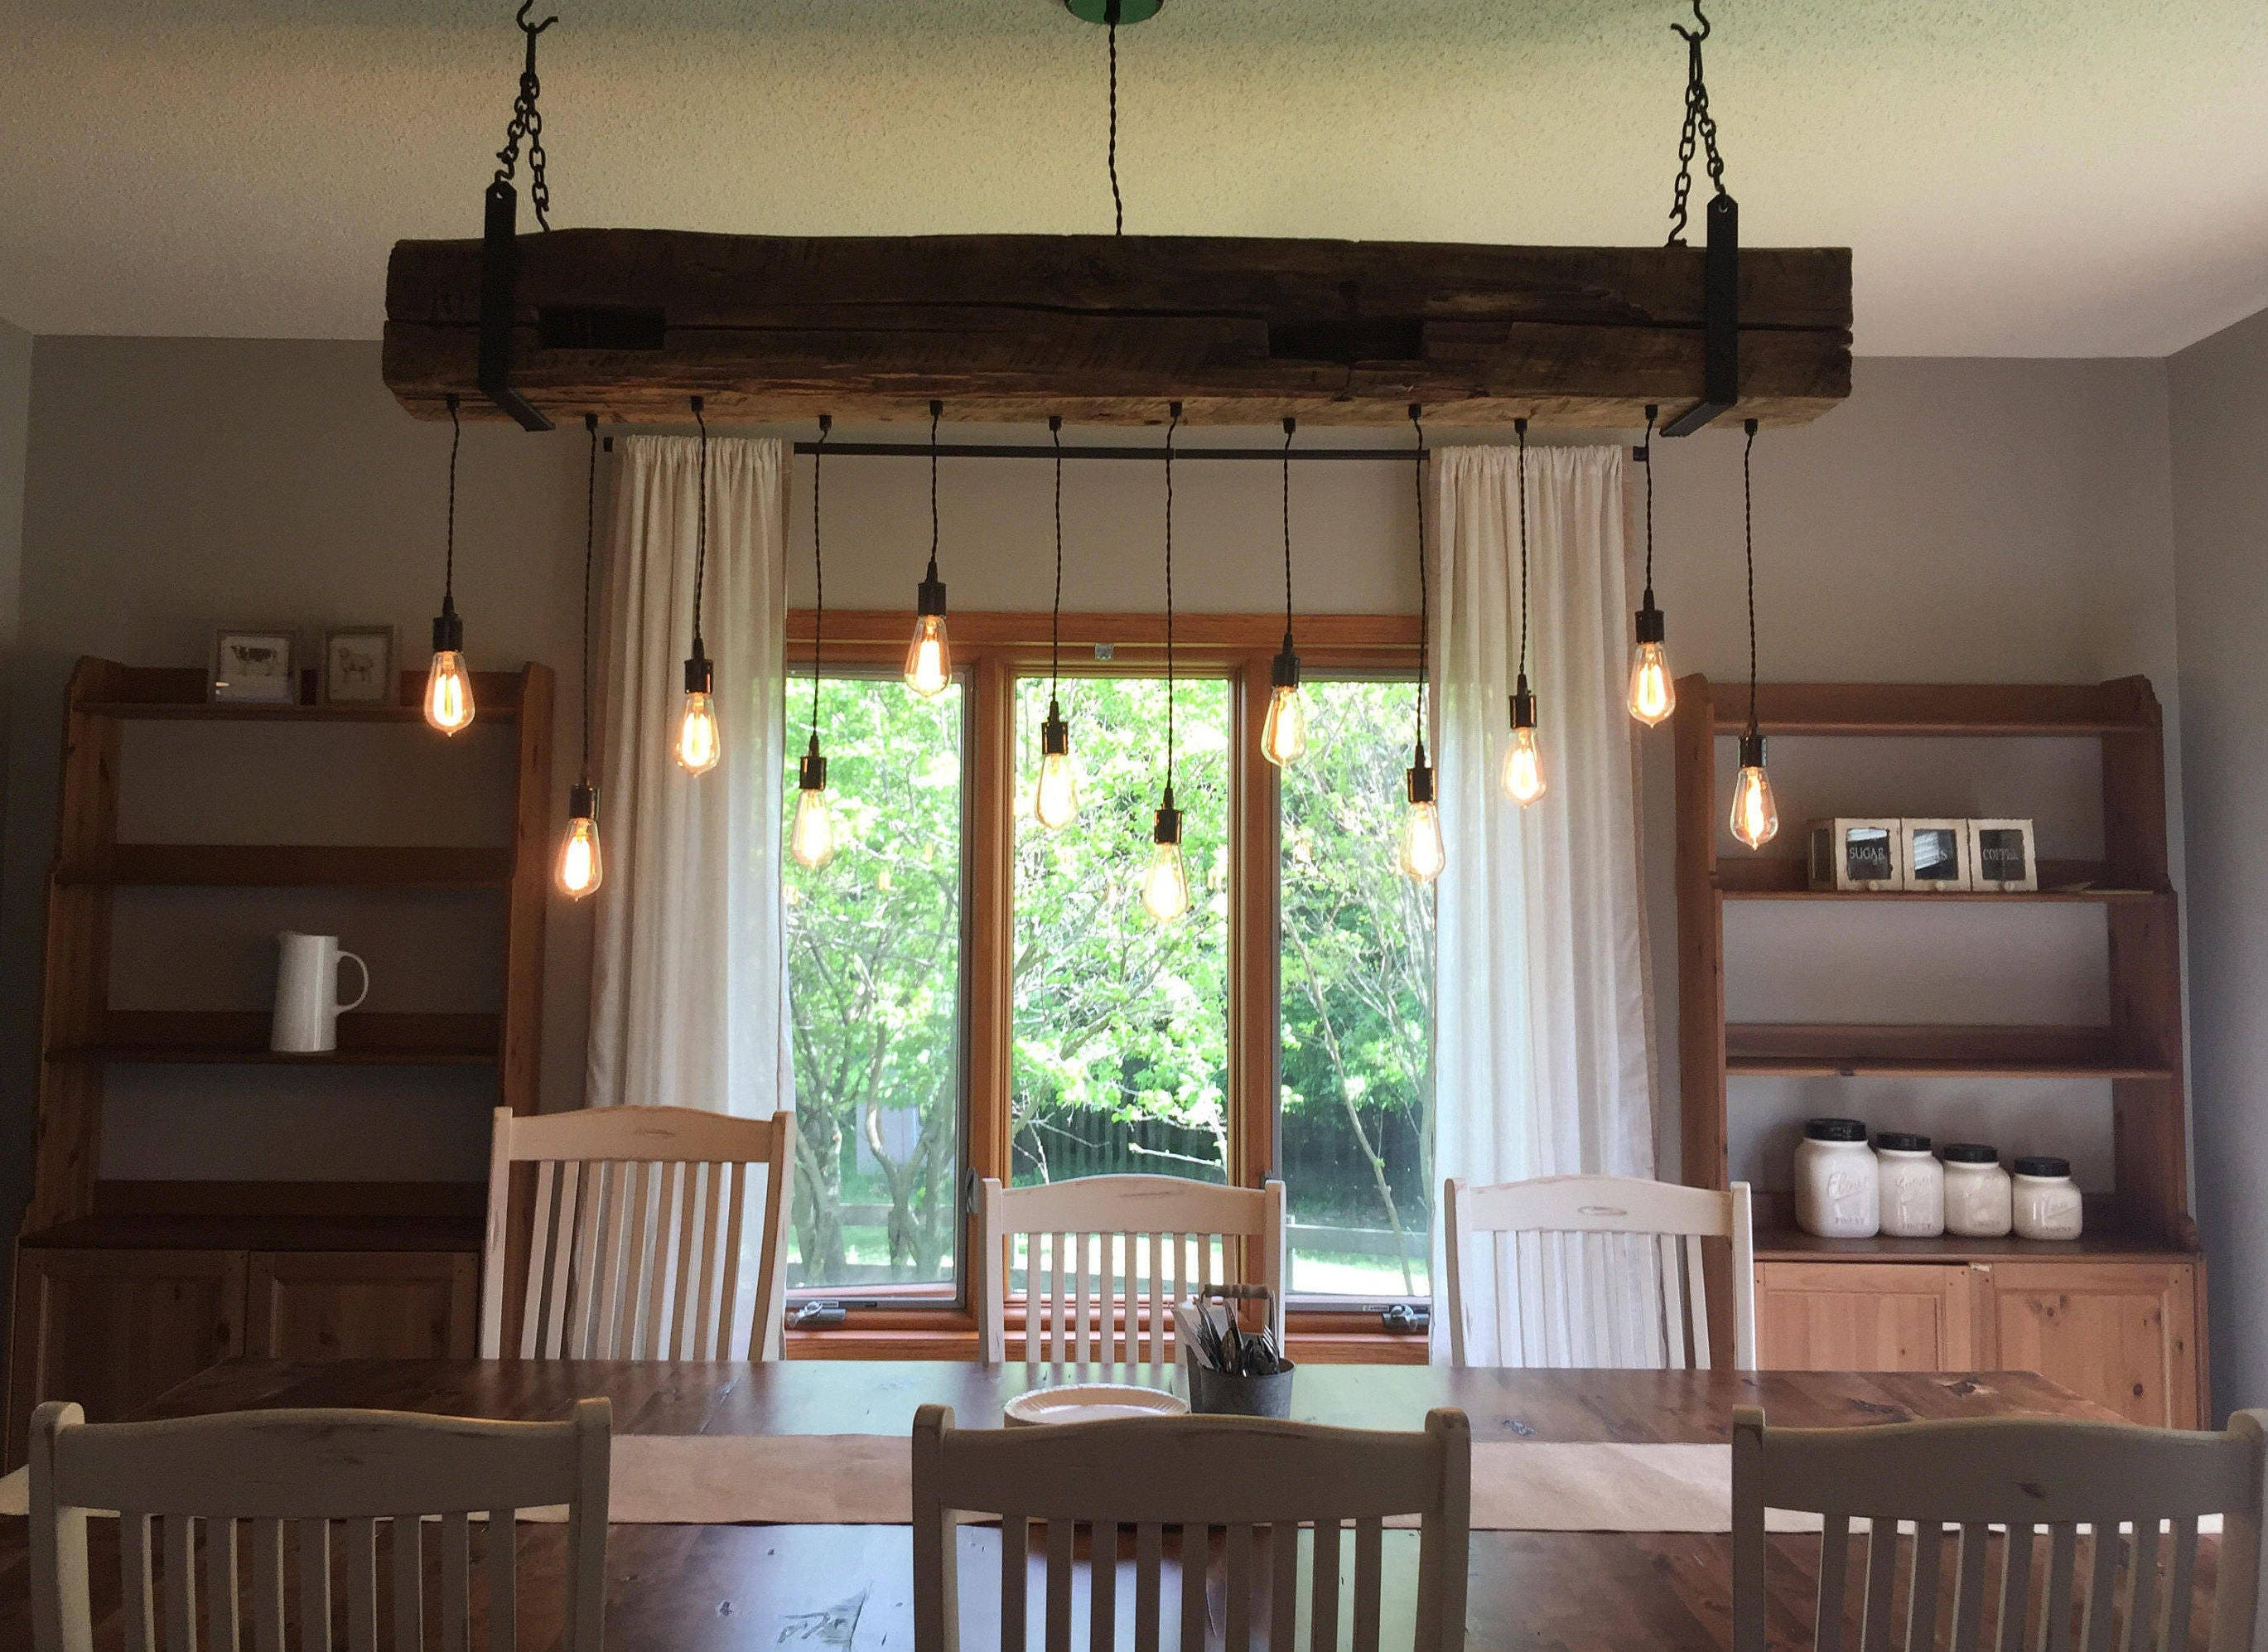 72 Reclaimed Barn Beam Light Fixture with hanging